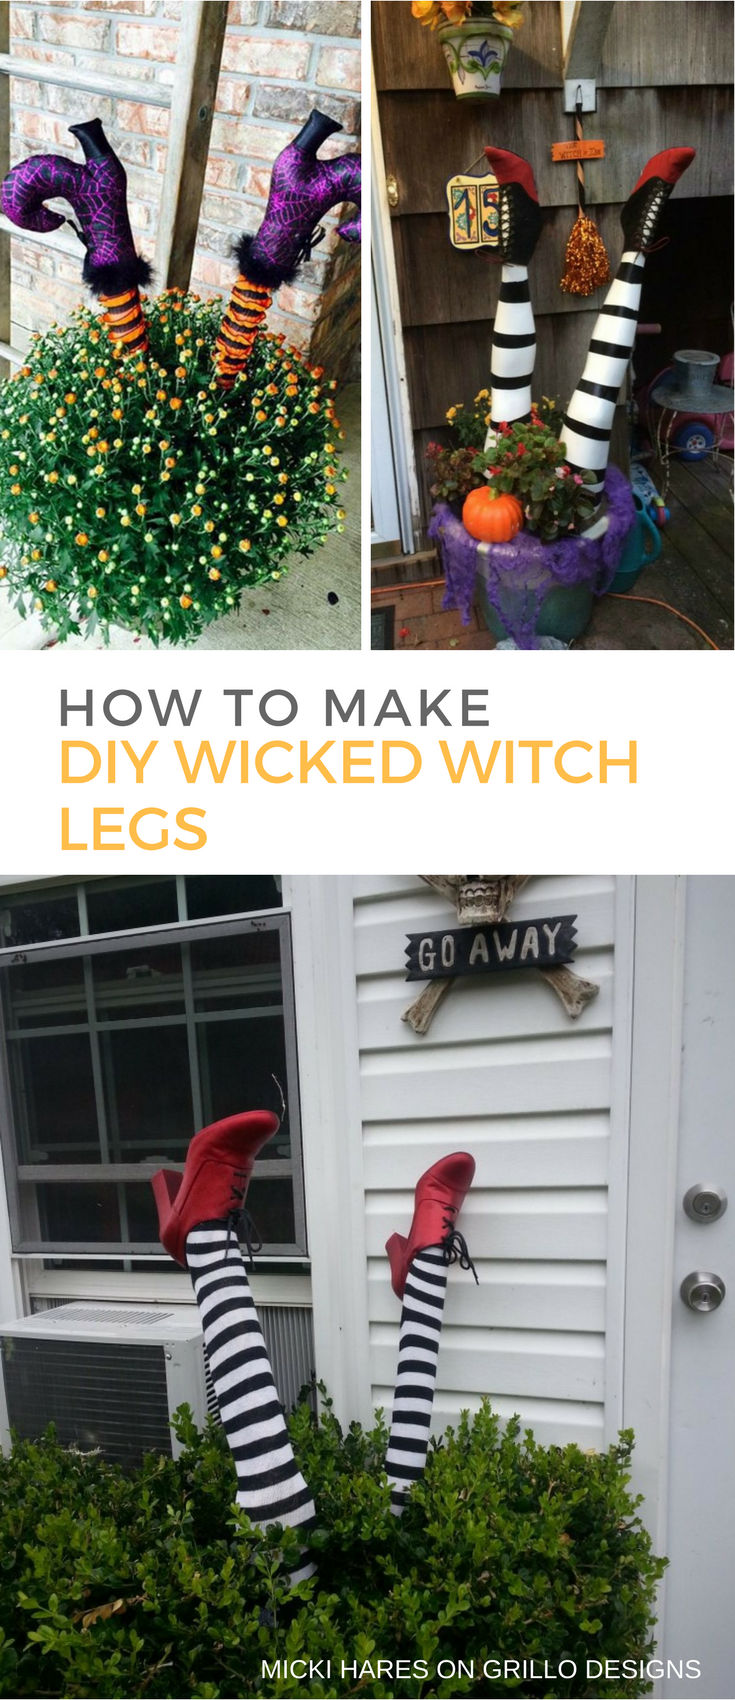 Decoration Exterieur Halloween How To Make Wicked Witch Legs For The Home Diy Halloween